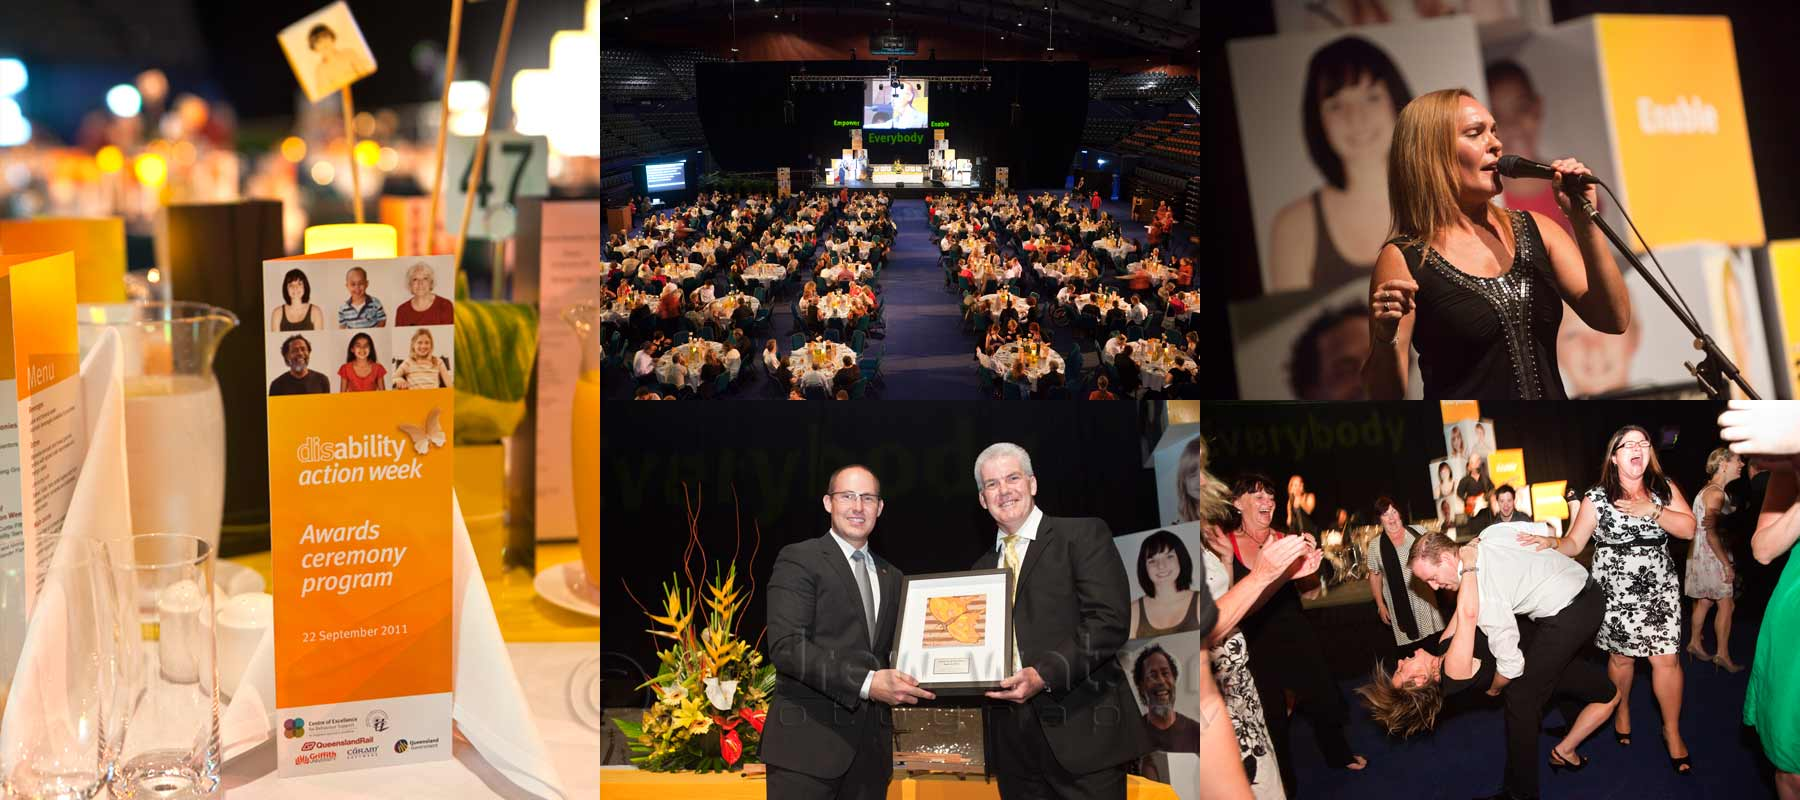 Event Photography - Images captured at Disablity Action Week Awards Night, Cairns Convention Centre